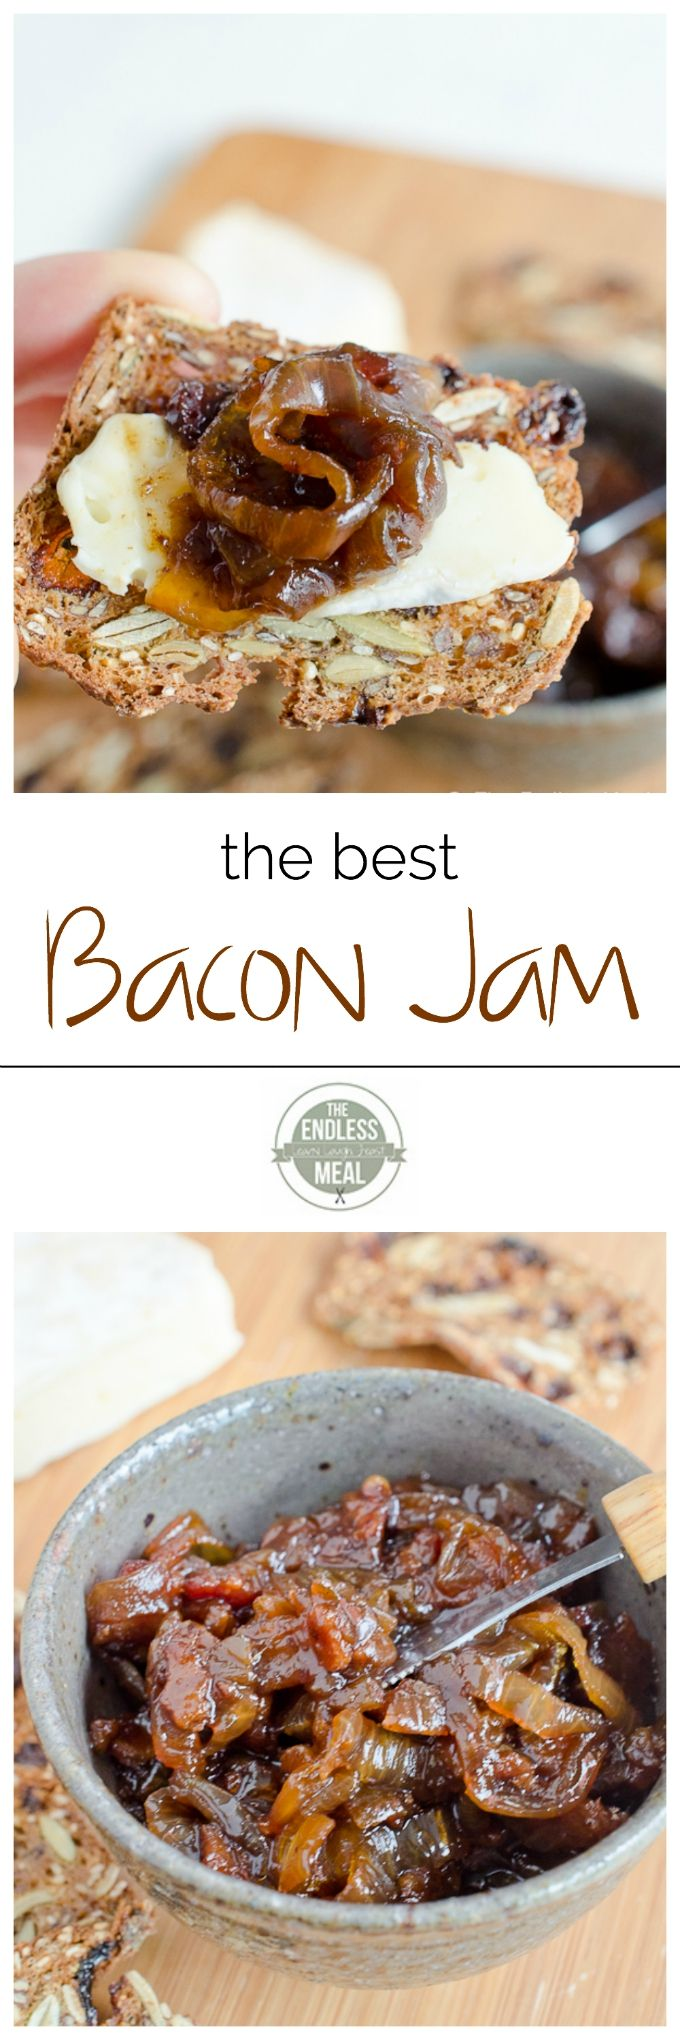 The Best Bacon Jam Recipe